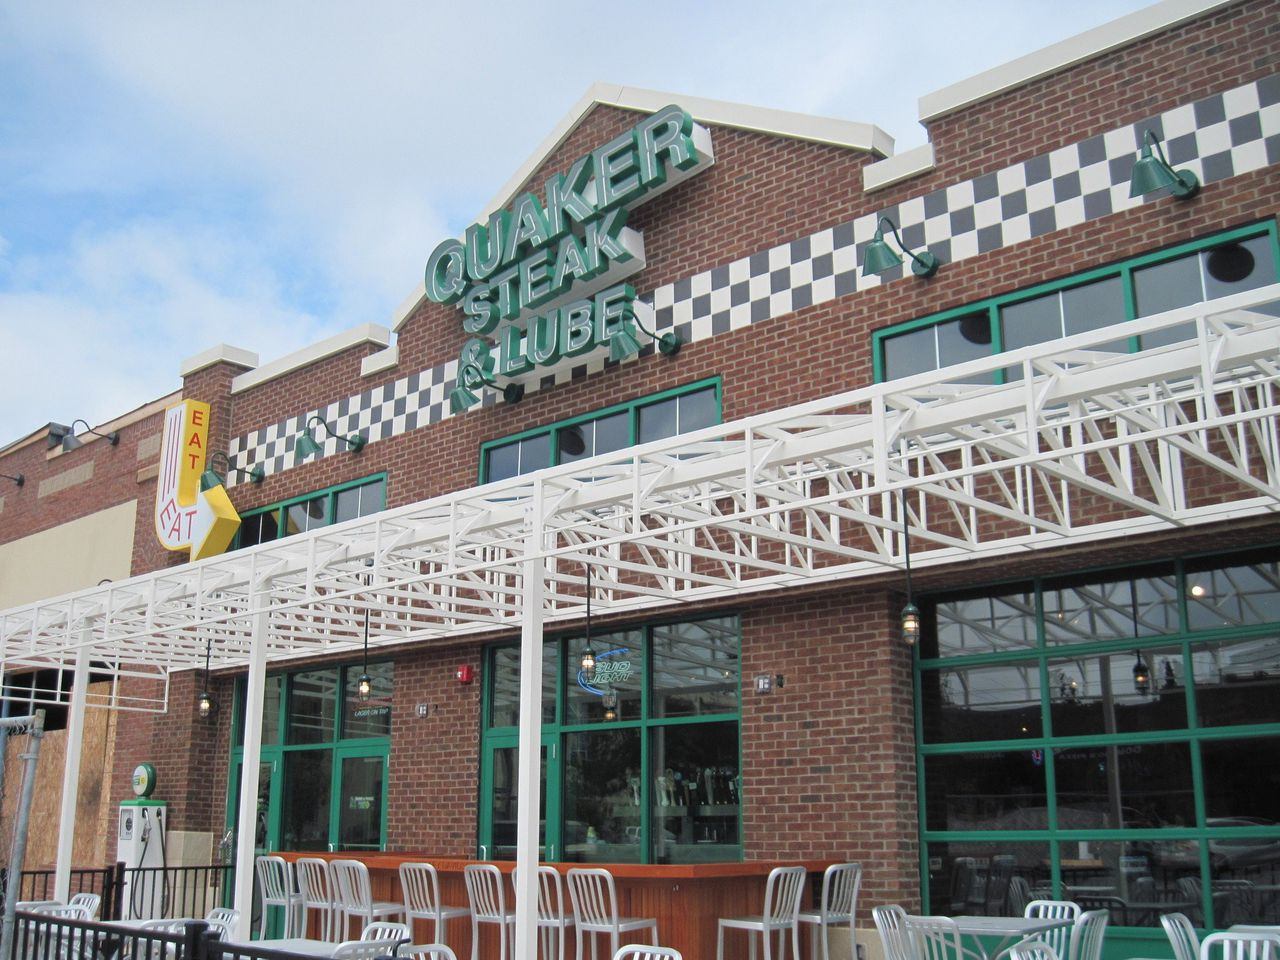 Quaker steak and lube bankruptcy filing